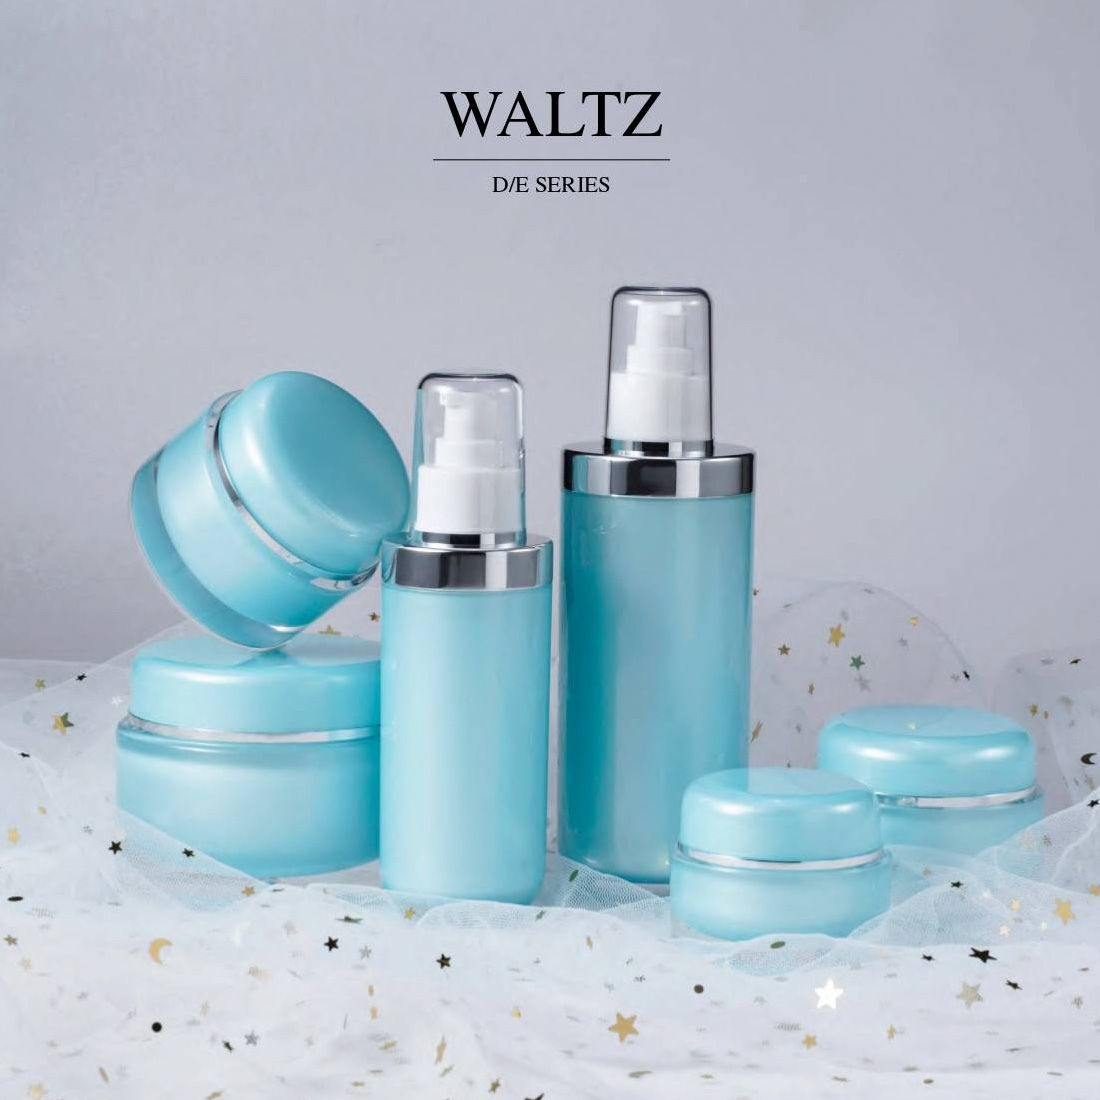 COSJAR cometic container design - Waltz series